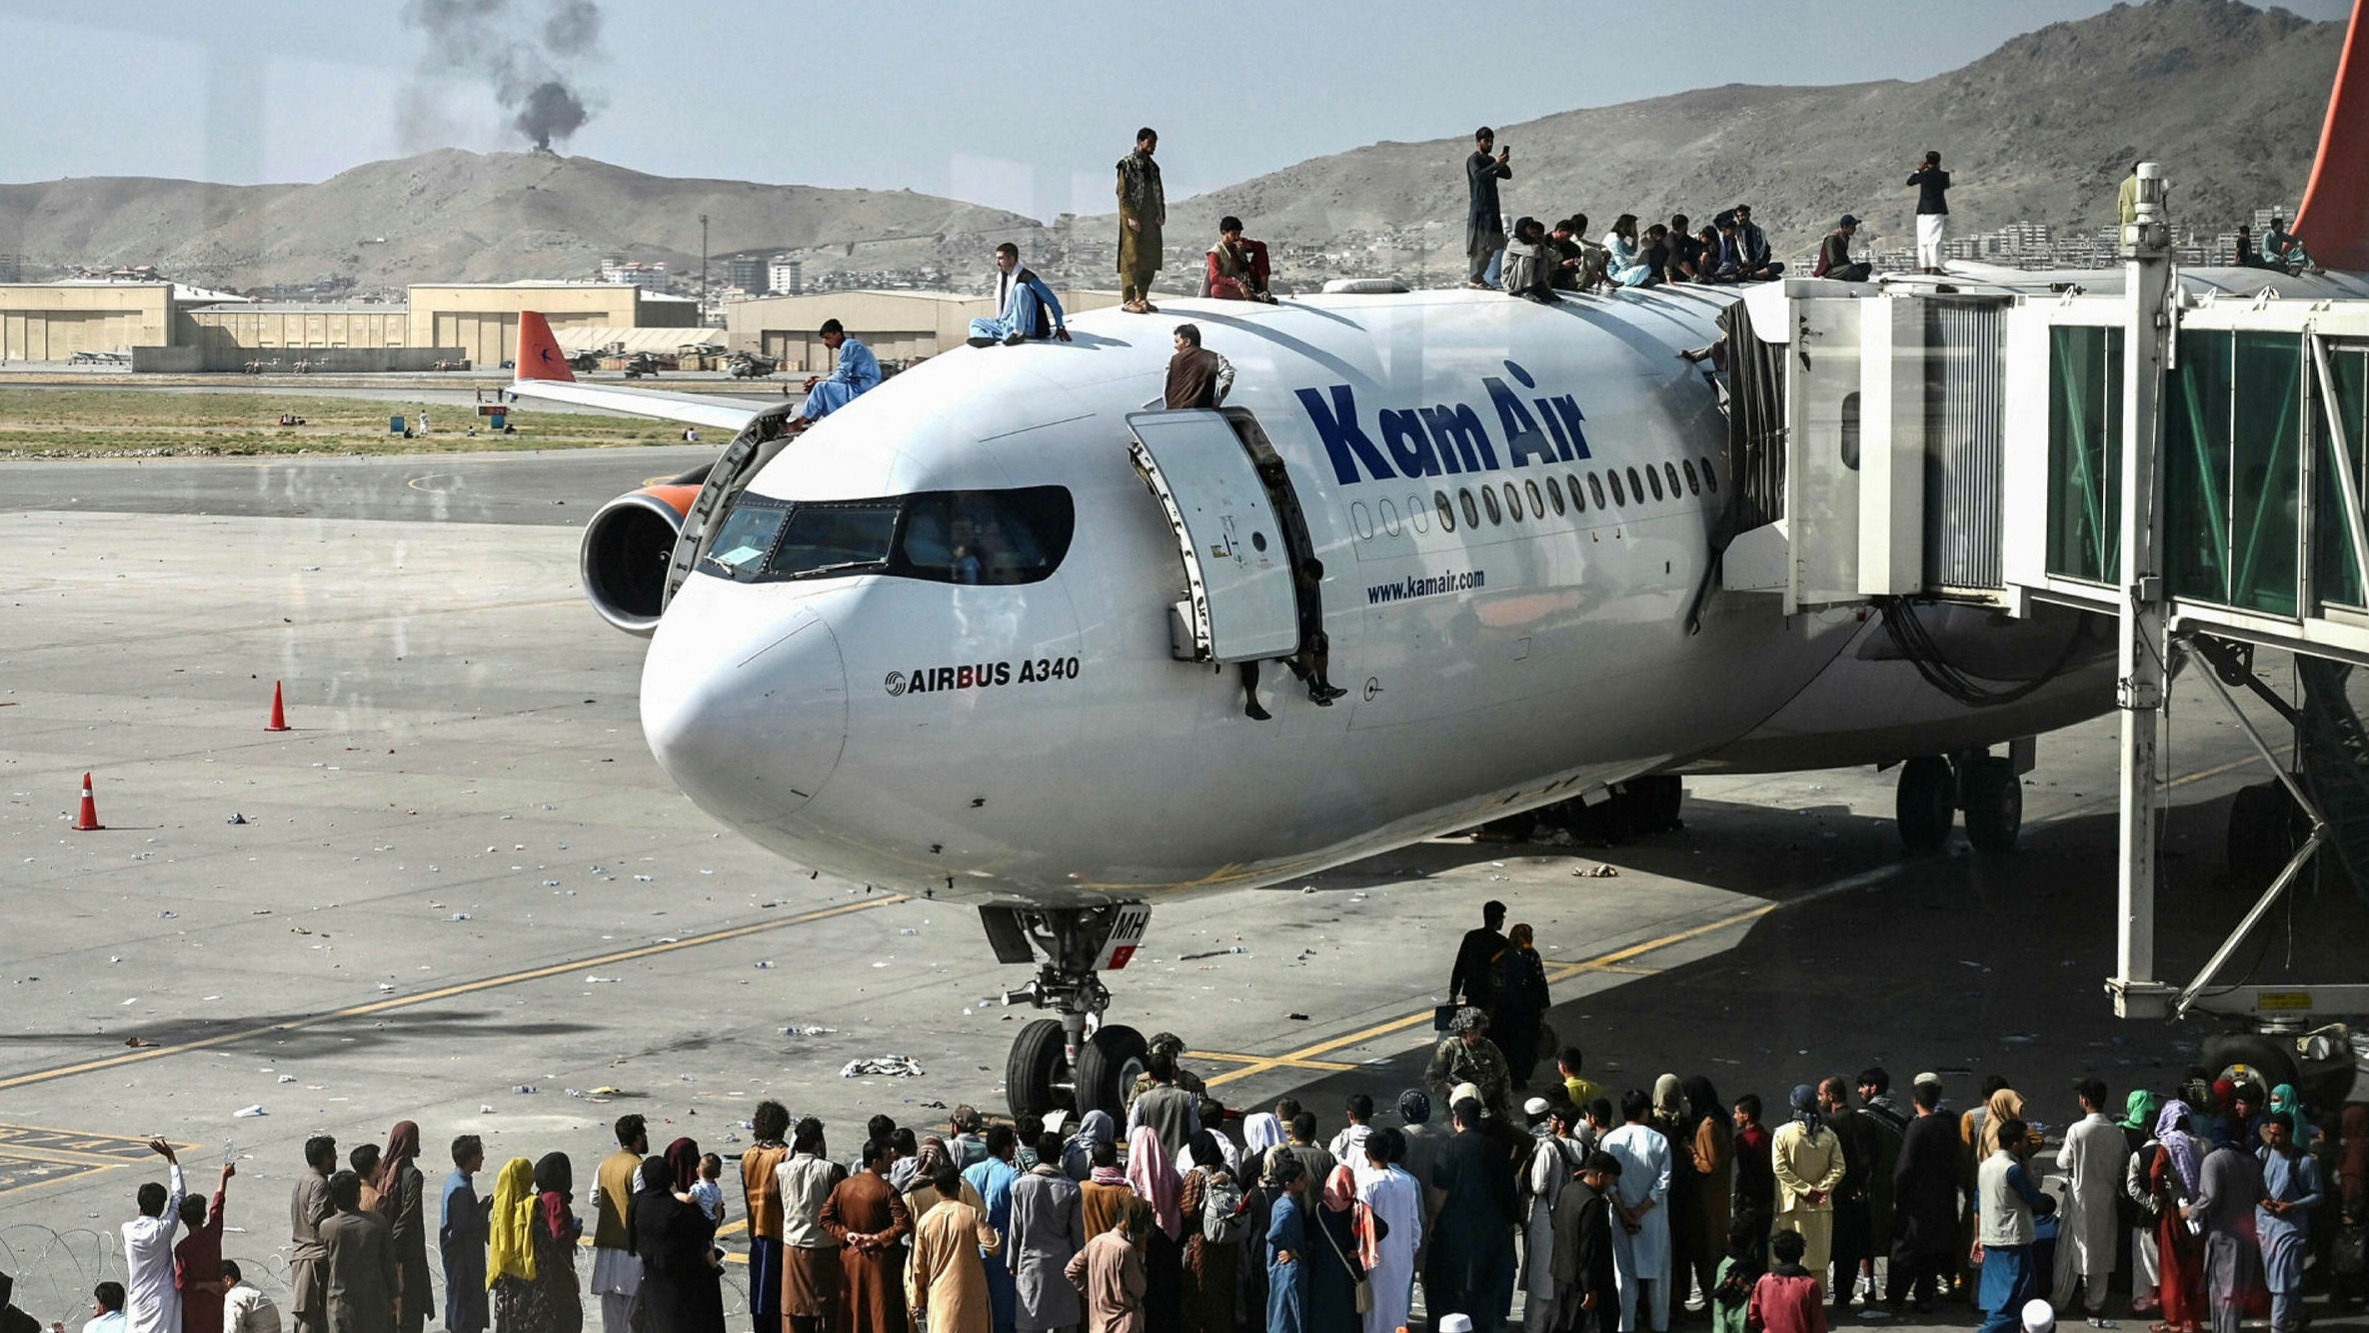 Heartbreaking Moment People 'Fall From Plane' Trying To Flee From Afghanistan (Video)